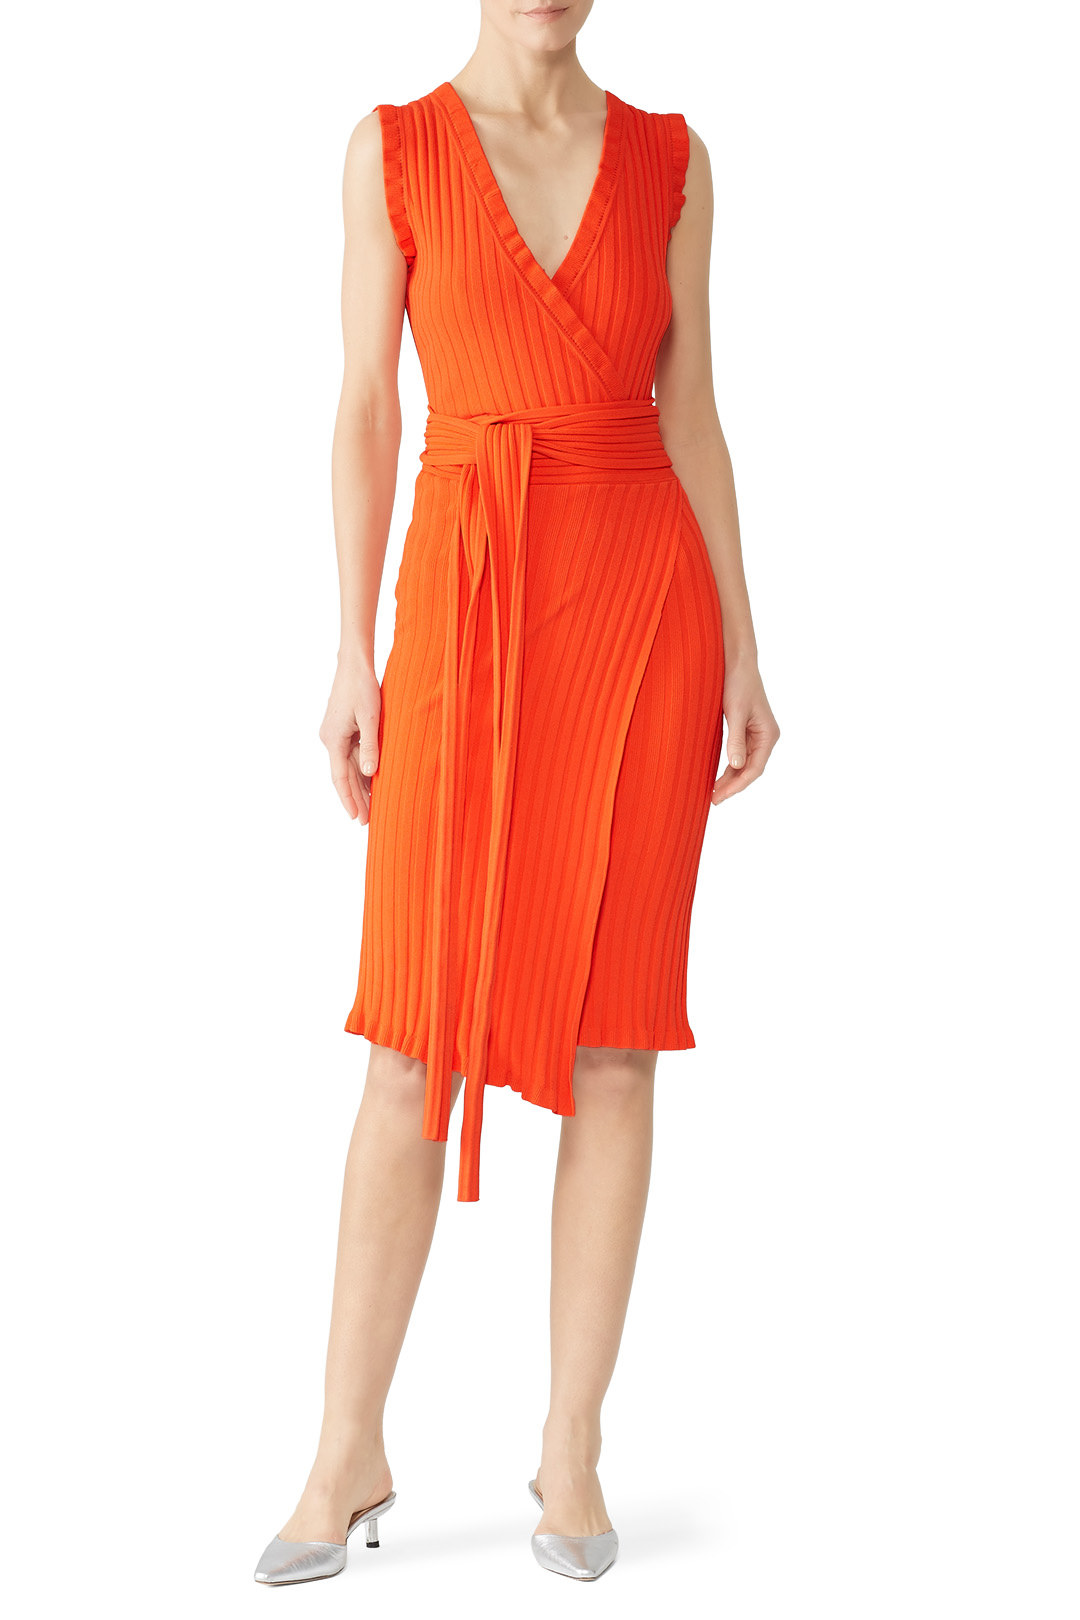 Milly - Persimmon V-Neck Wrap Dress